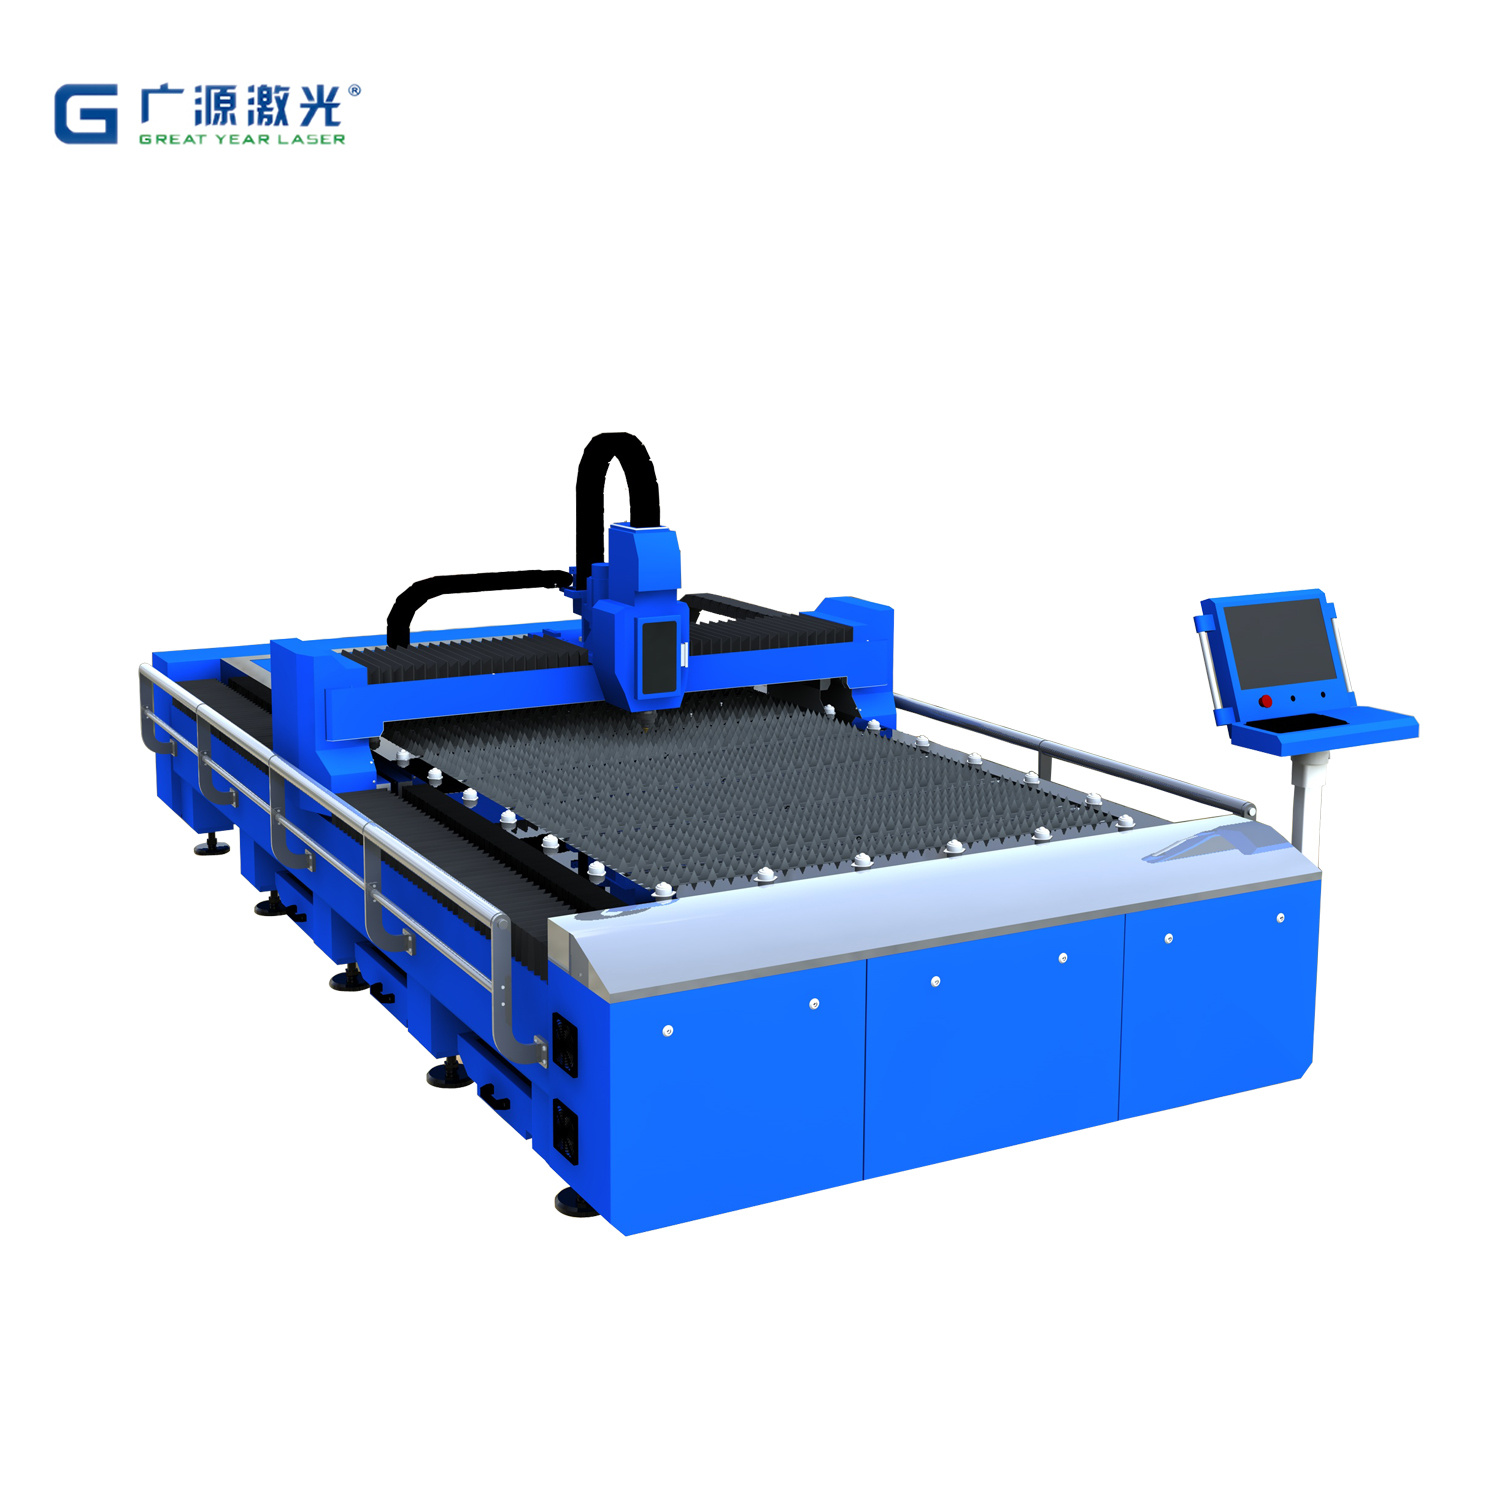 Laser Cutting Machine Metal Hot Item Fiber Laser Metal Cutting Machine Metal Laser Cutter Gy 1530fc